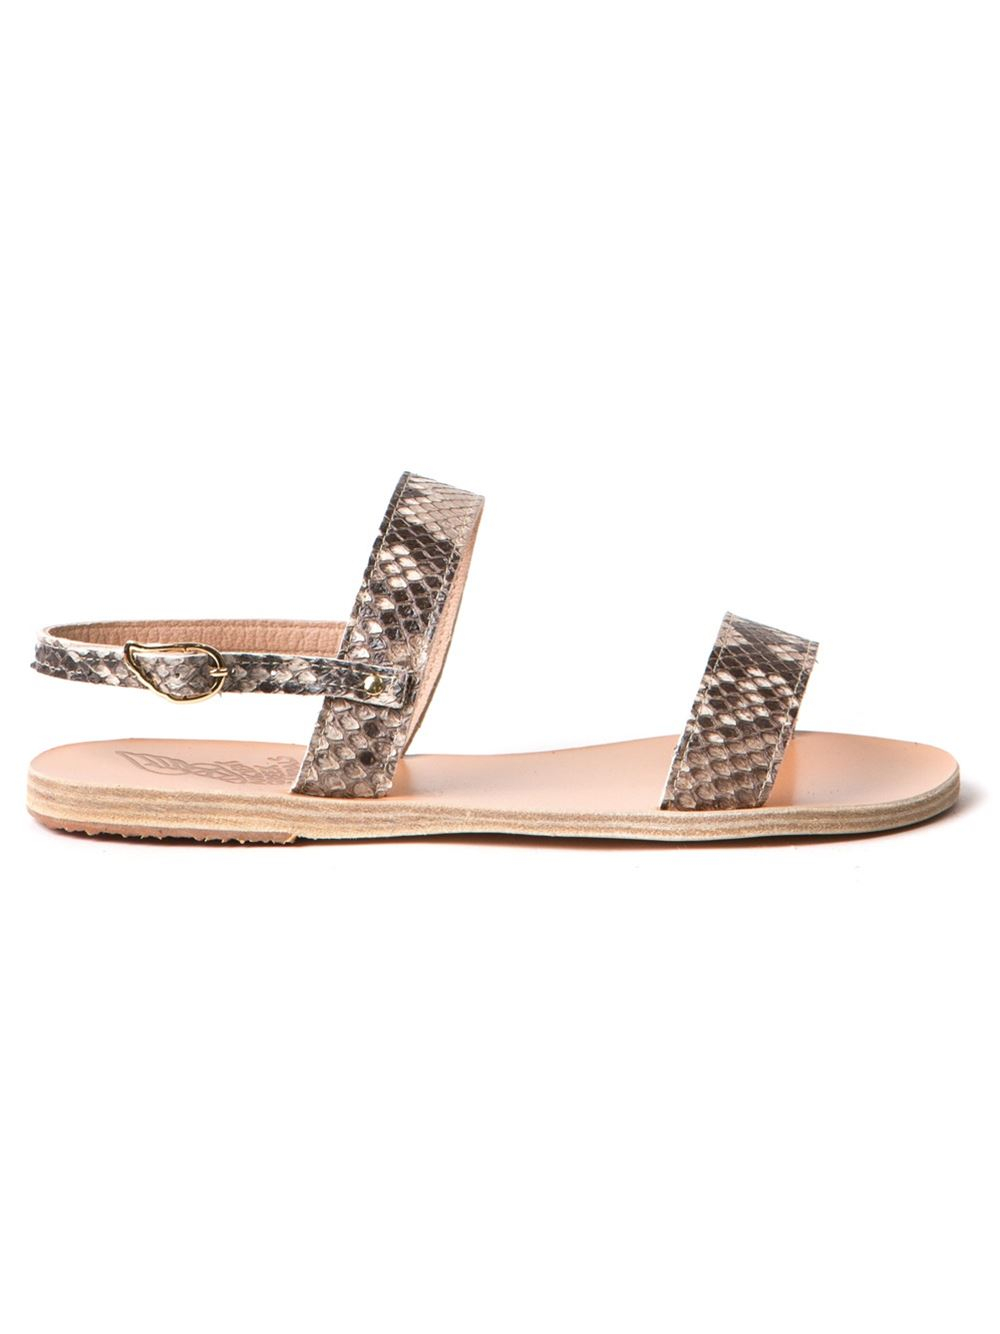 Ancient Greek Sandals Clio Flat Sandal In Beige Nude